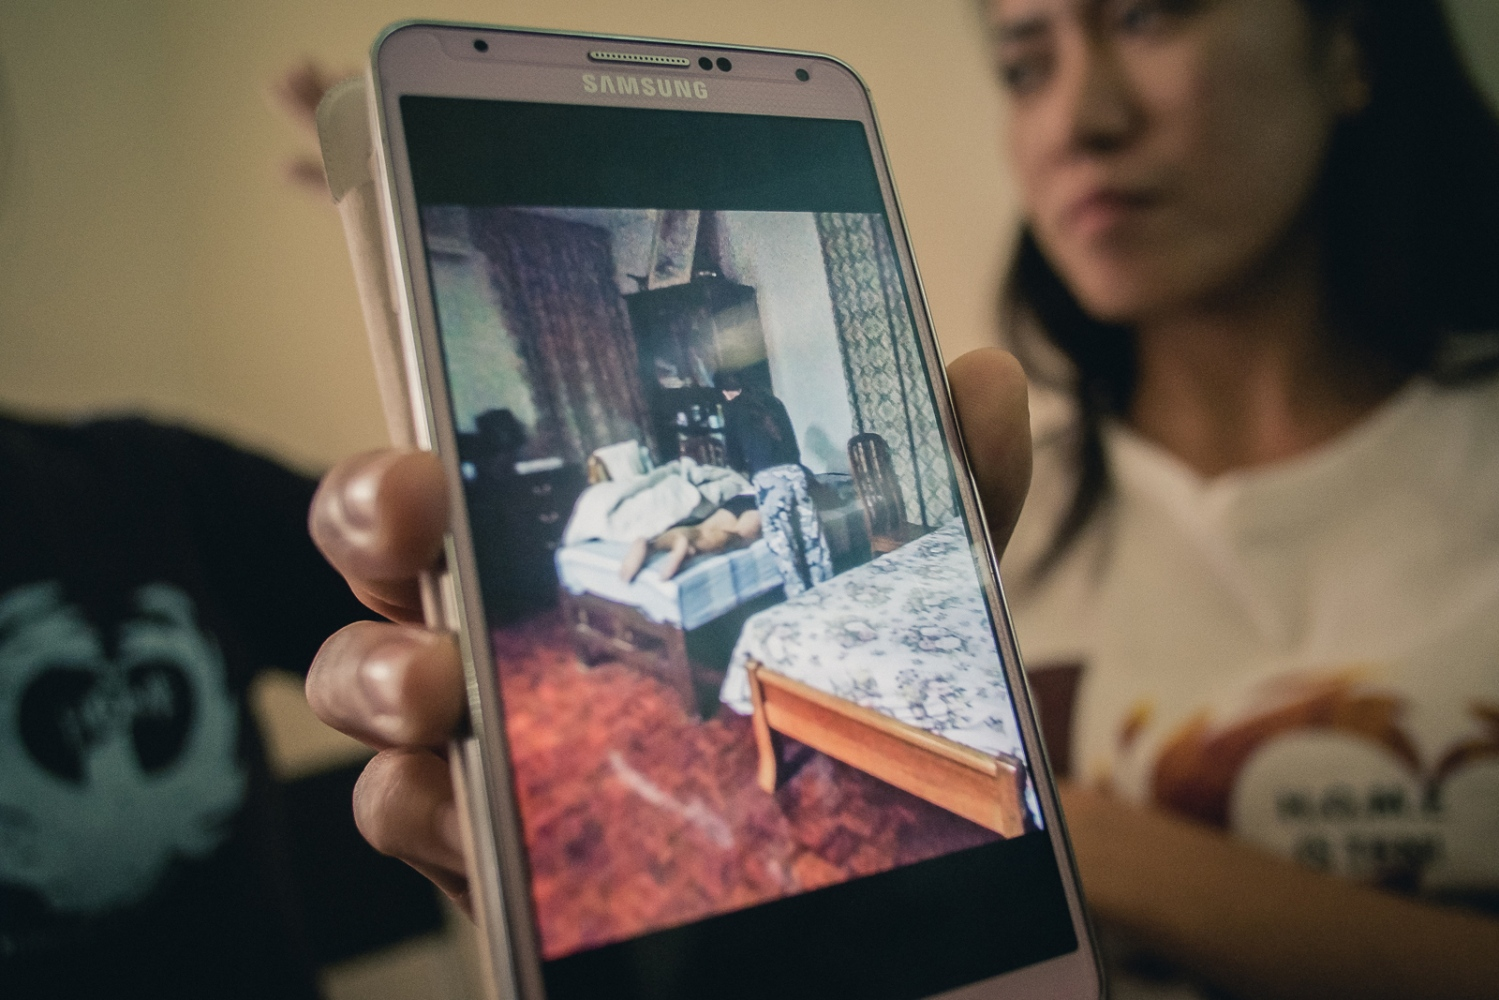 A foreign domestic worker in Singapore shows a photograph depicting what she claims is her giving her male employer a massage, which was requested by him and which she felt unable to refuse. Because of this and other alleged abuses she ran away from her employer and sought refuge with The Humanitarian Organisation for Migration Economics (HOME), an organisation that provides direct assistance to men and women migrants and victims of human trafficking and forced labour. She states the photograph was taken by another foreign domestic worker who also worked for the same employer. Foreign domestic workers in Singapore are required by law to live with their employer.Becasue of this, many who suffer abuses feel they have no choice but to run away and seek shelter with their embassy or NGOs such as HOME.Many domestic workers are asked to perform tasks that are outside their job description, are dangerous or simply inappropriate and feel unable to refuse for fear of being penalised, punished or fired. Abuse of domestic workers ranges from physical and verbal abuse, sexual assault, punative action for perceived wrongs, violation of contracted rights and witheld pay.